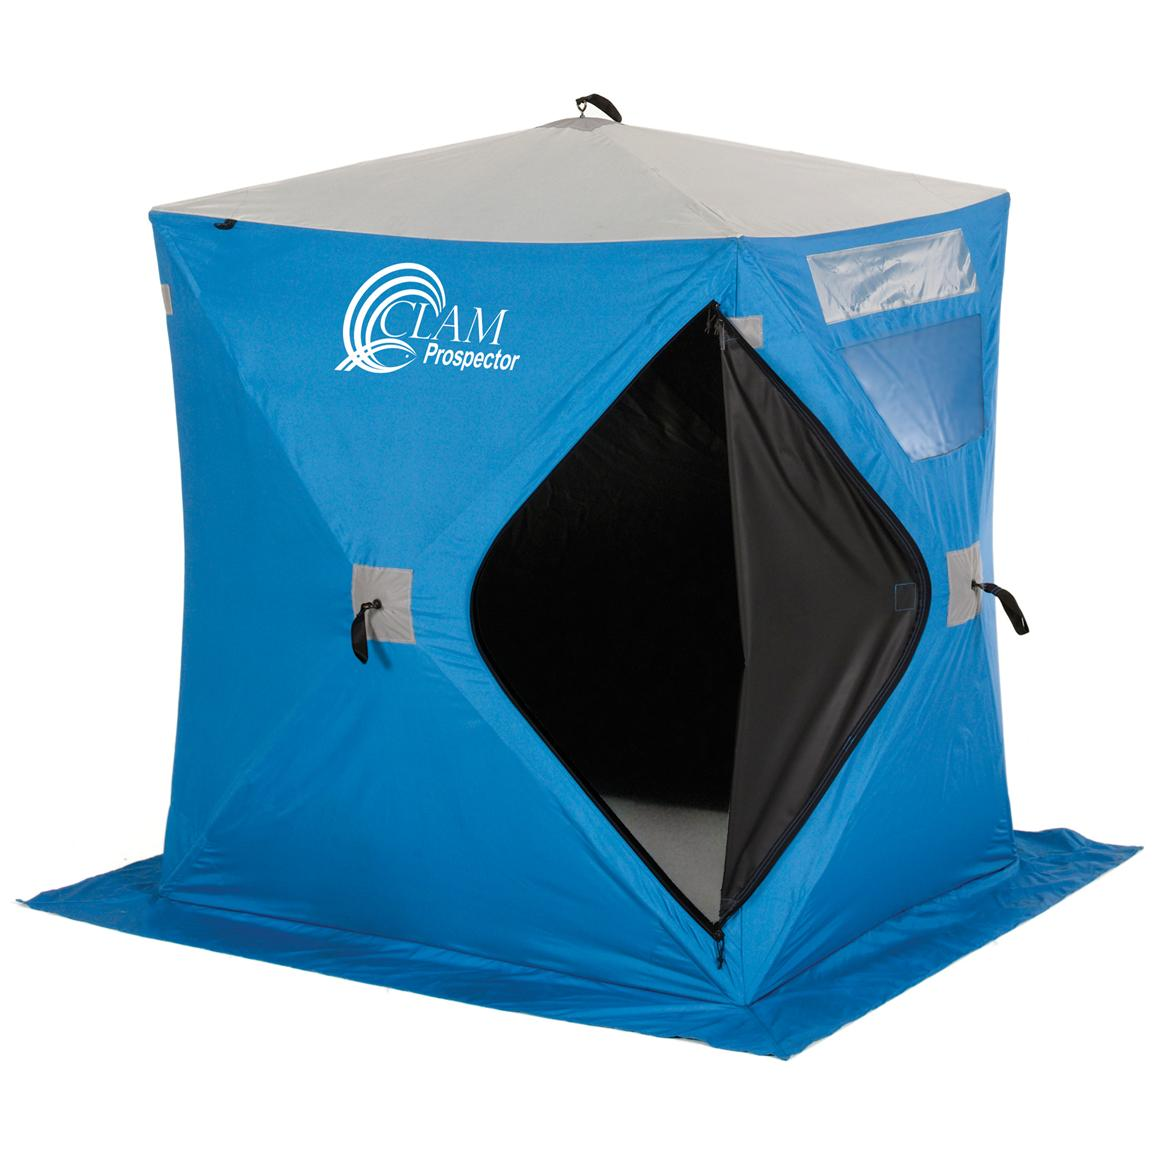 Portable Ice Shelters : Clam™ prospector portable pop up shelter  ice